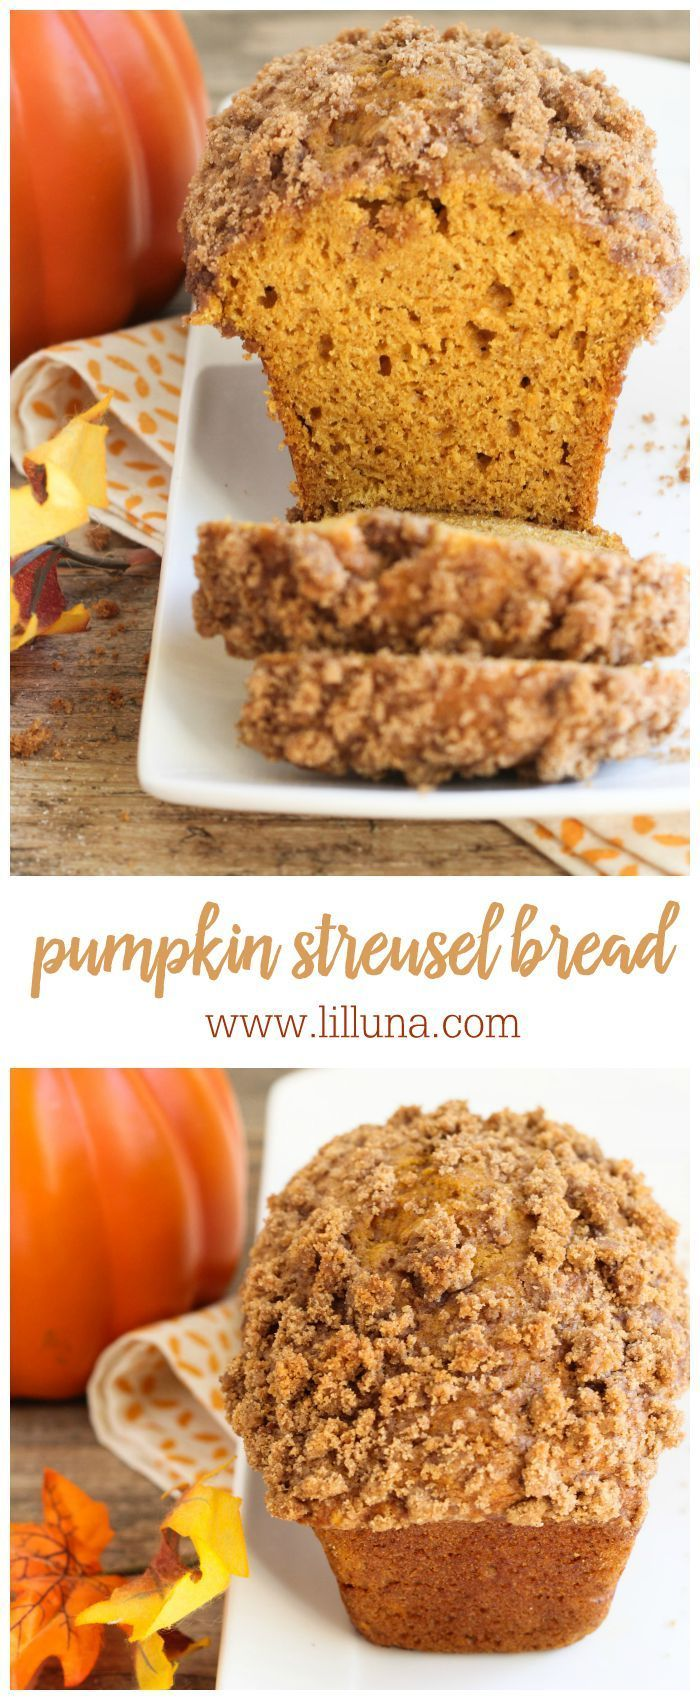 This soft and delicious Pumpkin Streusel Bread recipe is filled with the flavors and fall!